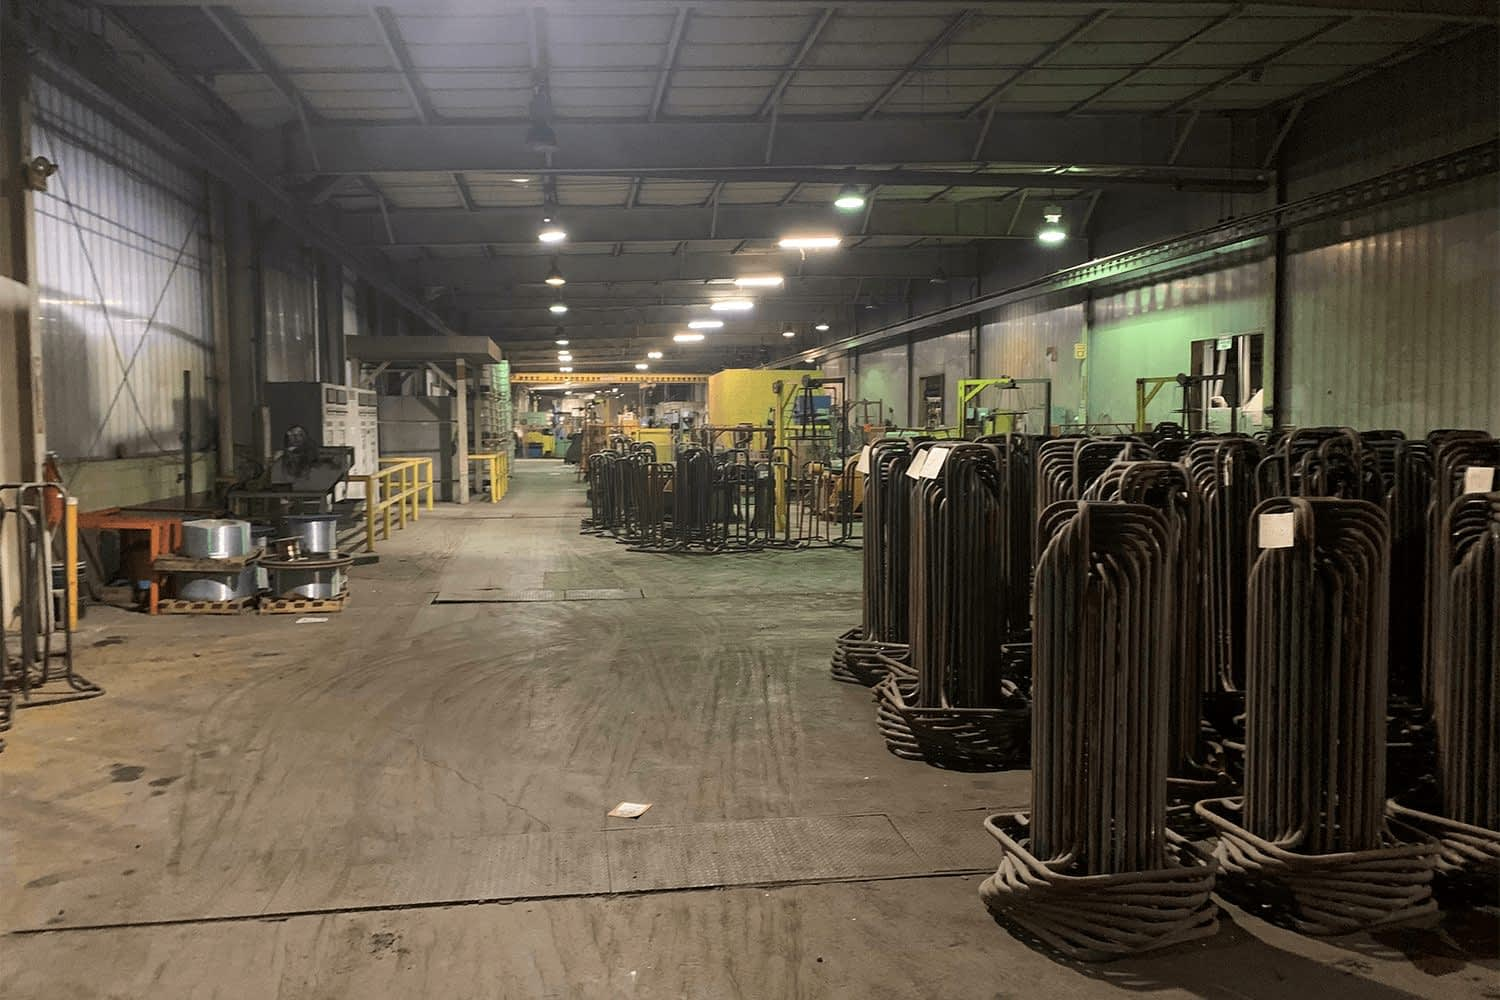 Storage area with industrial equipment